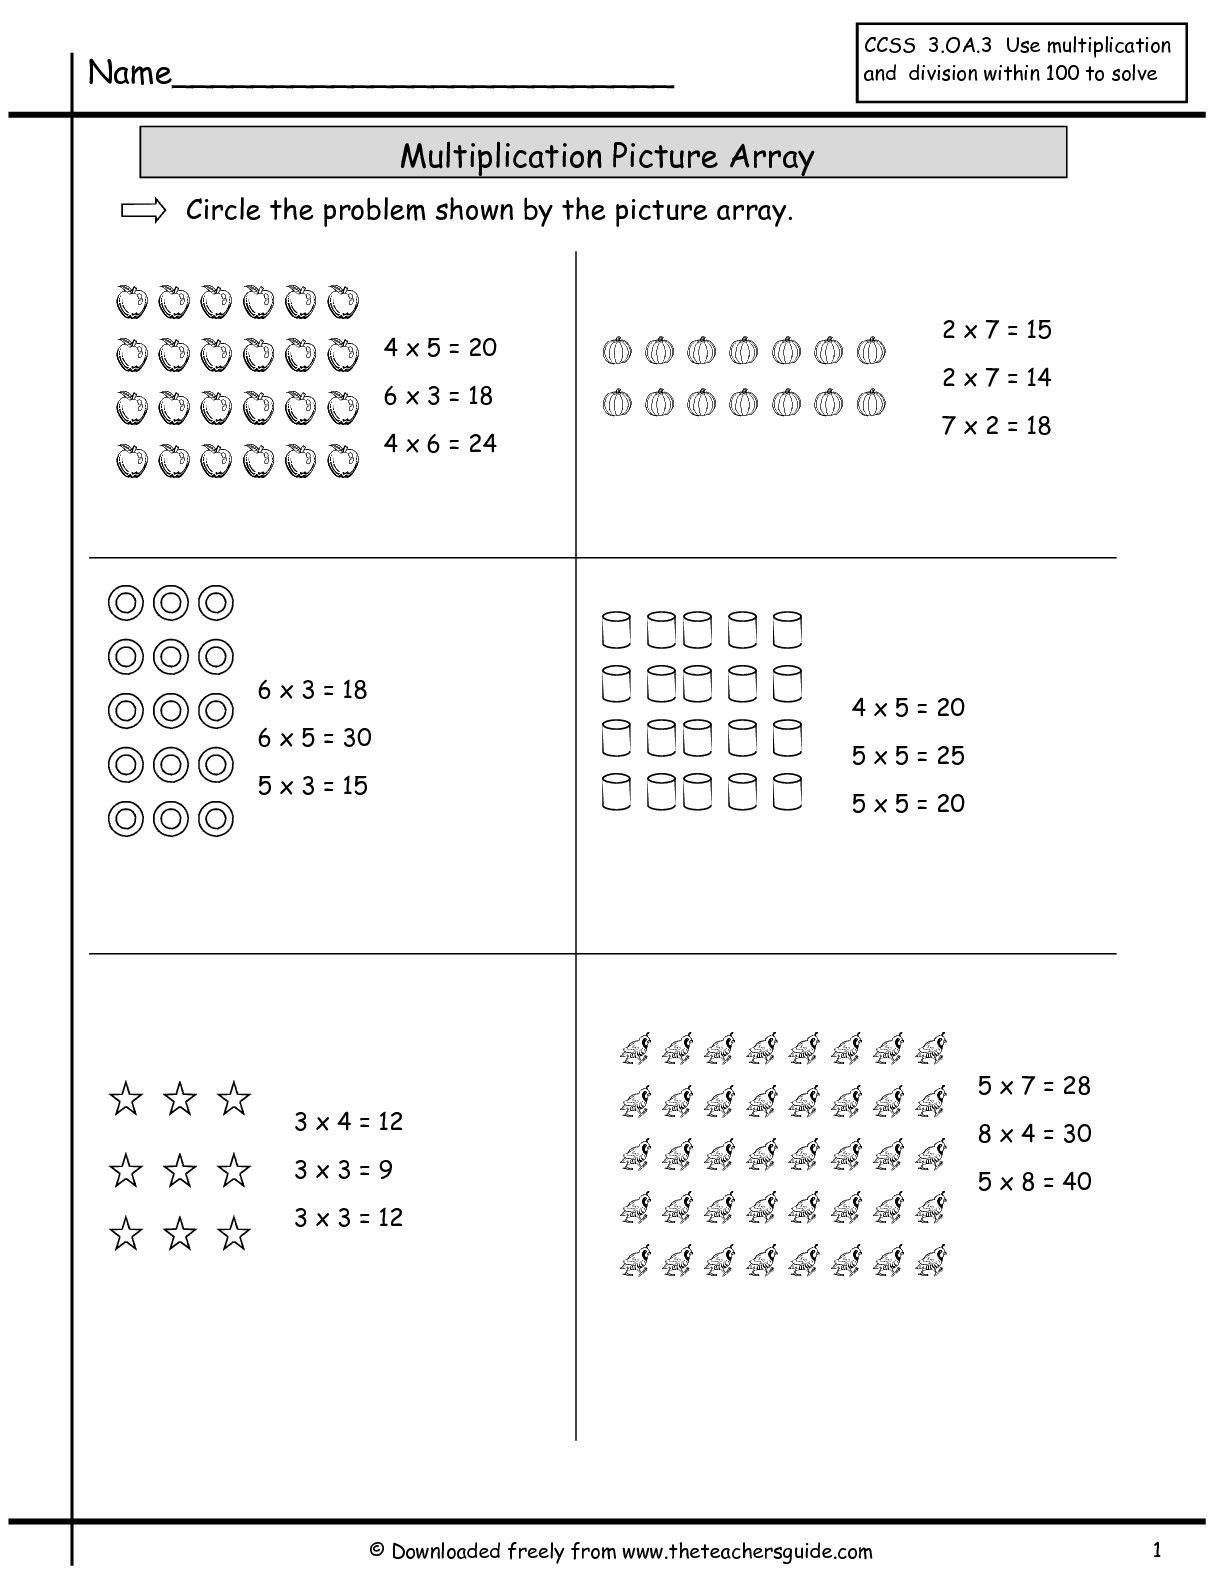 17 Best Multiplication Worksheets Grade 5 Math Images On